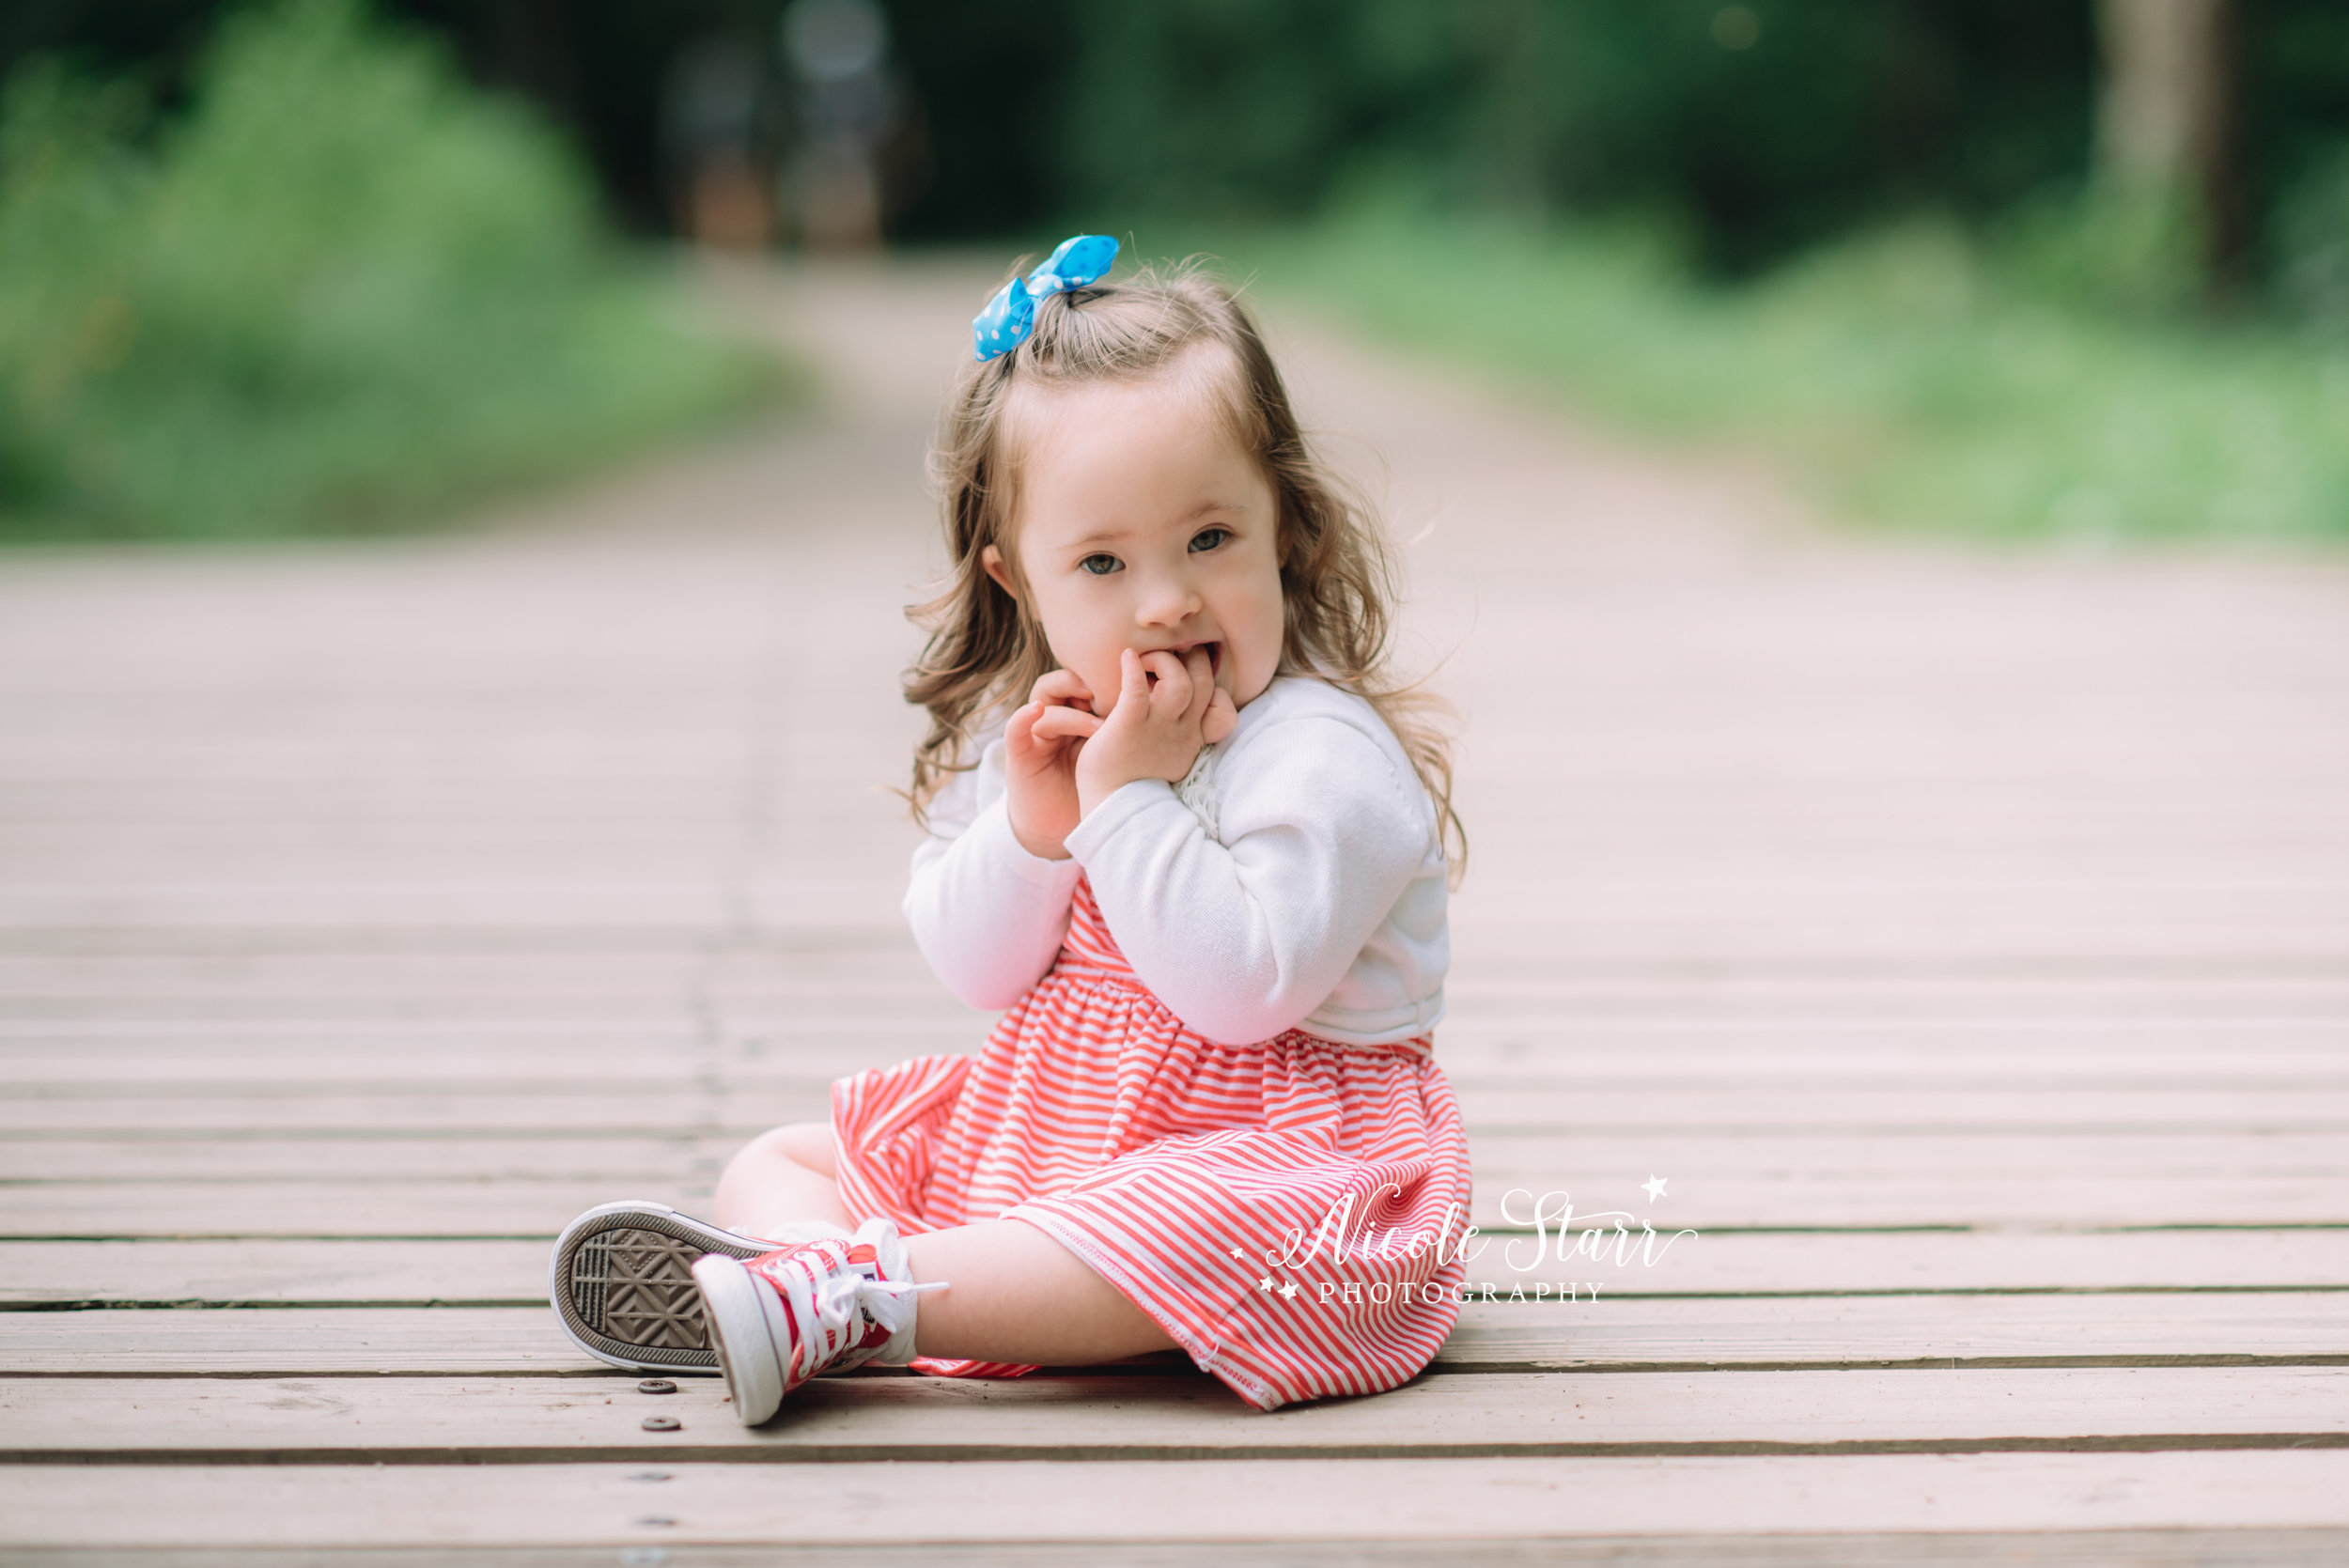 Nicole Starr Photography | Saratoga Springs Family Photographer | Boston Family Photographer | Upstate NY Family Photographer | Family Photographer